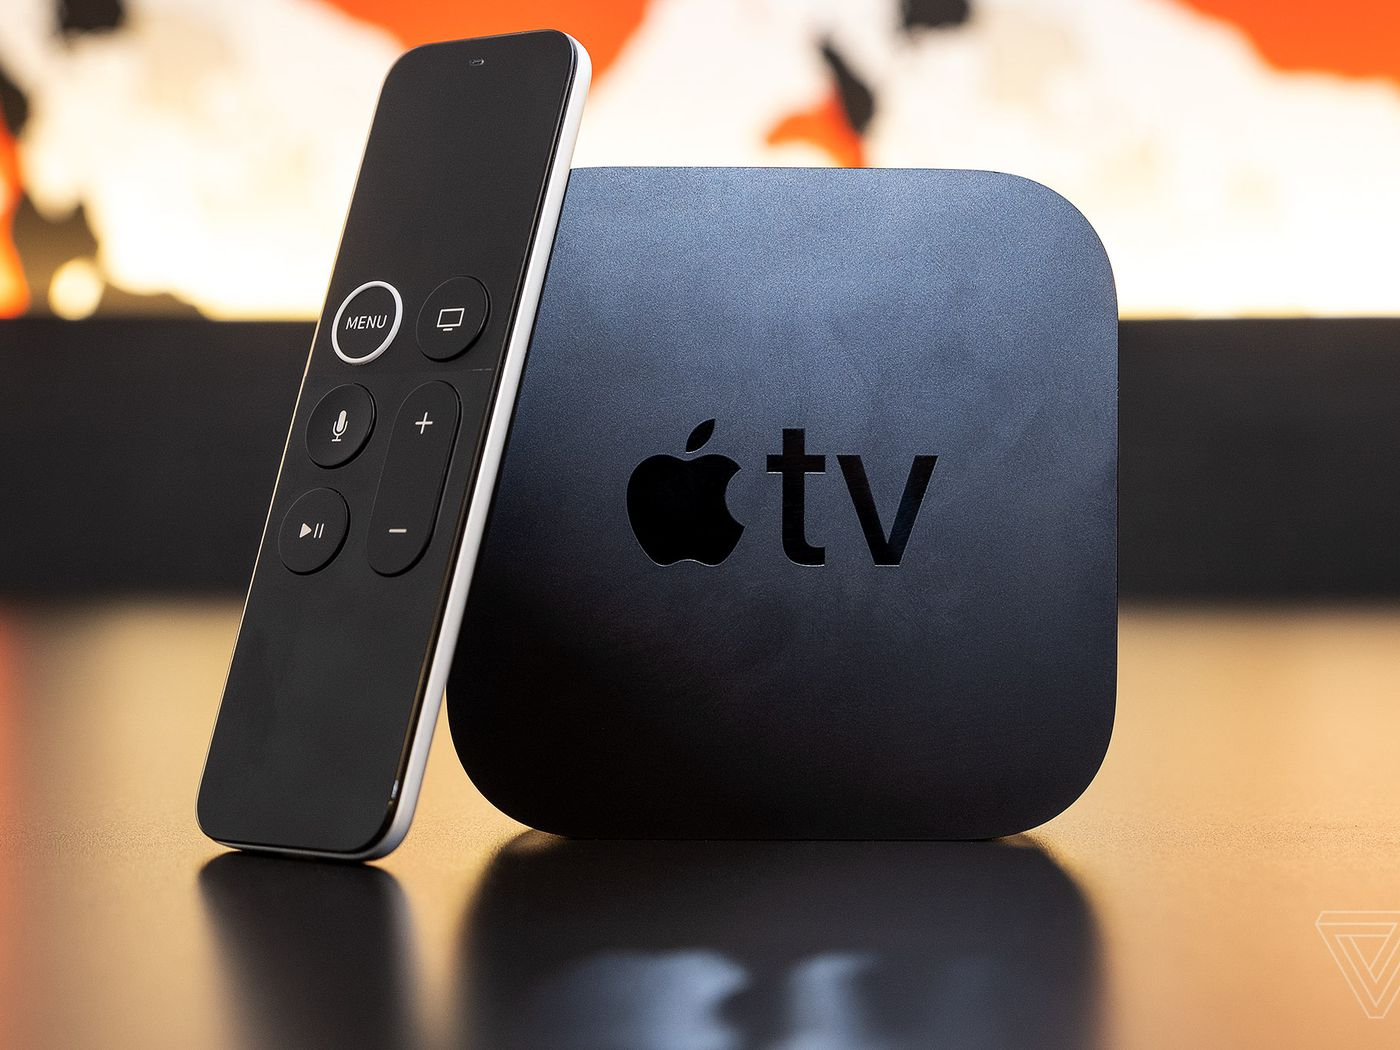 Apple Tv 4k Will At Last Play Youtube In 4k With Tvos 14 Update The Verge